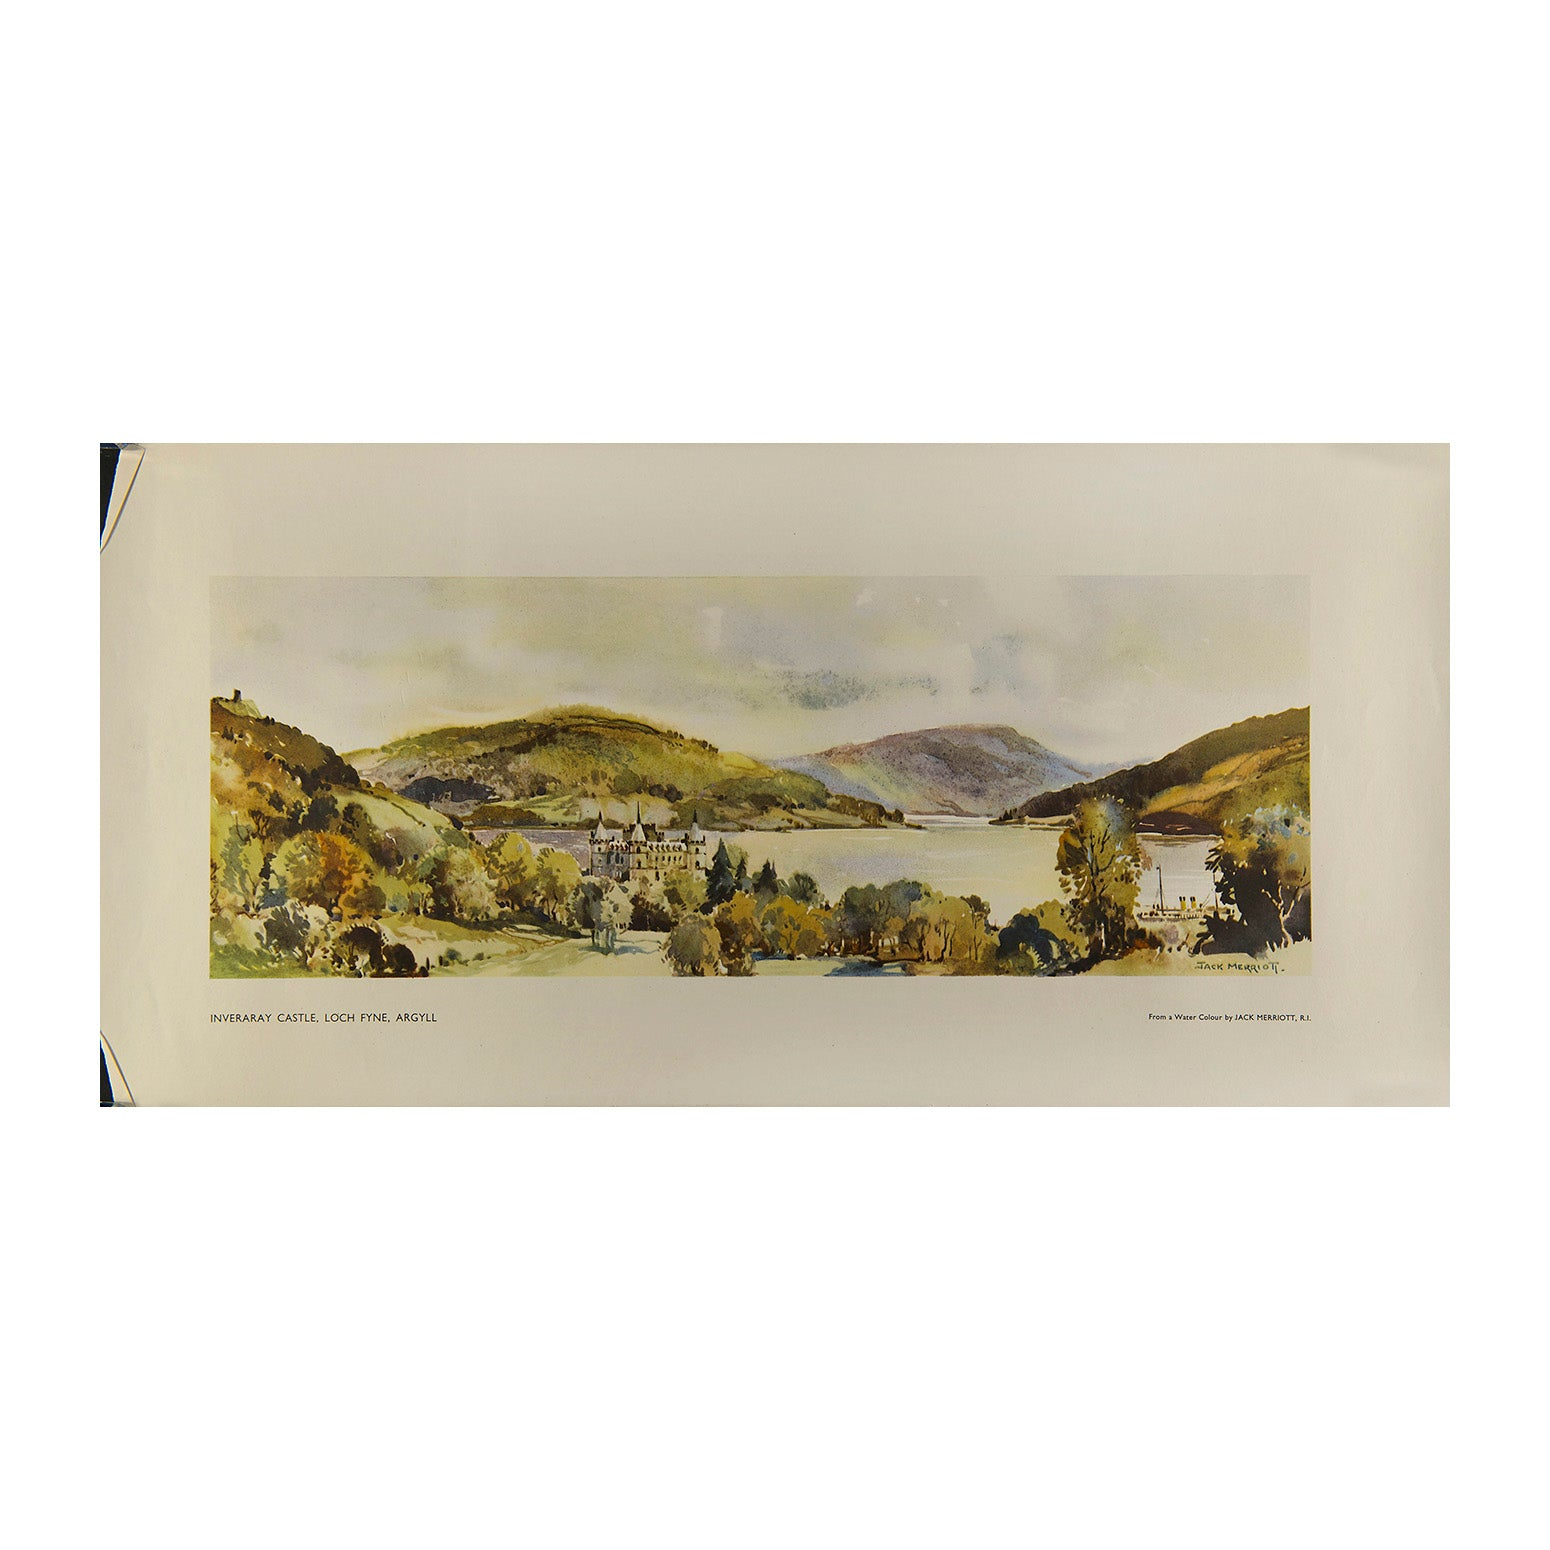 Inveraray Castle, Loch Fynne (railway carriage print)